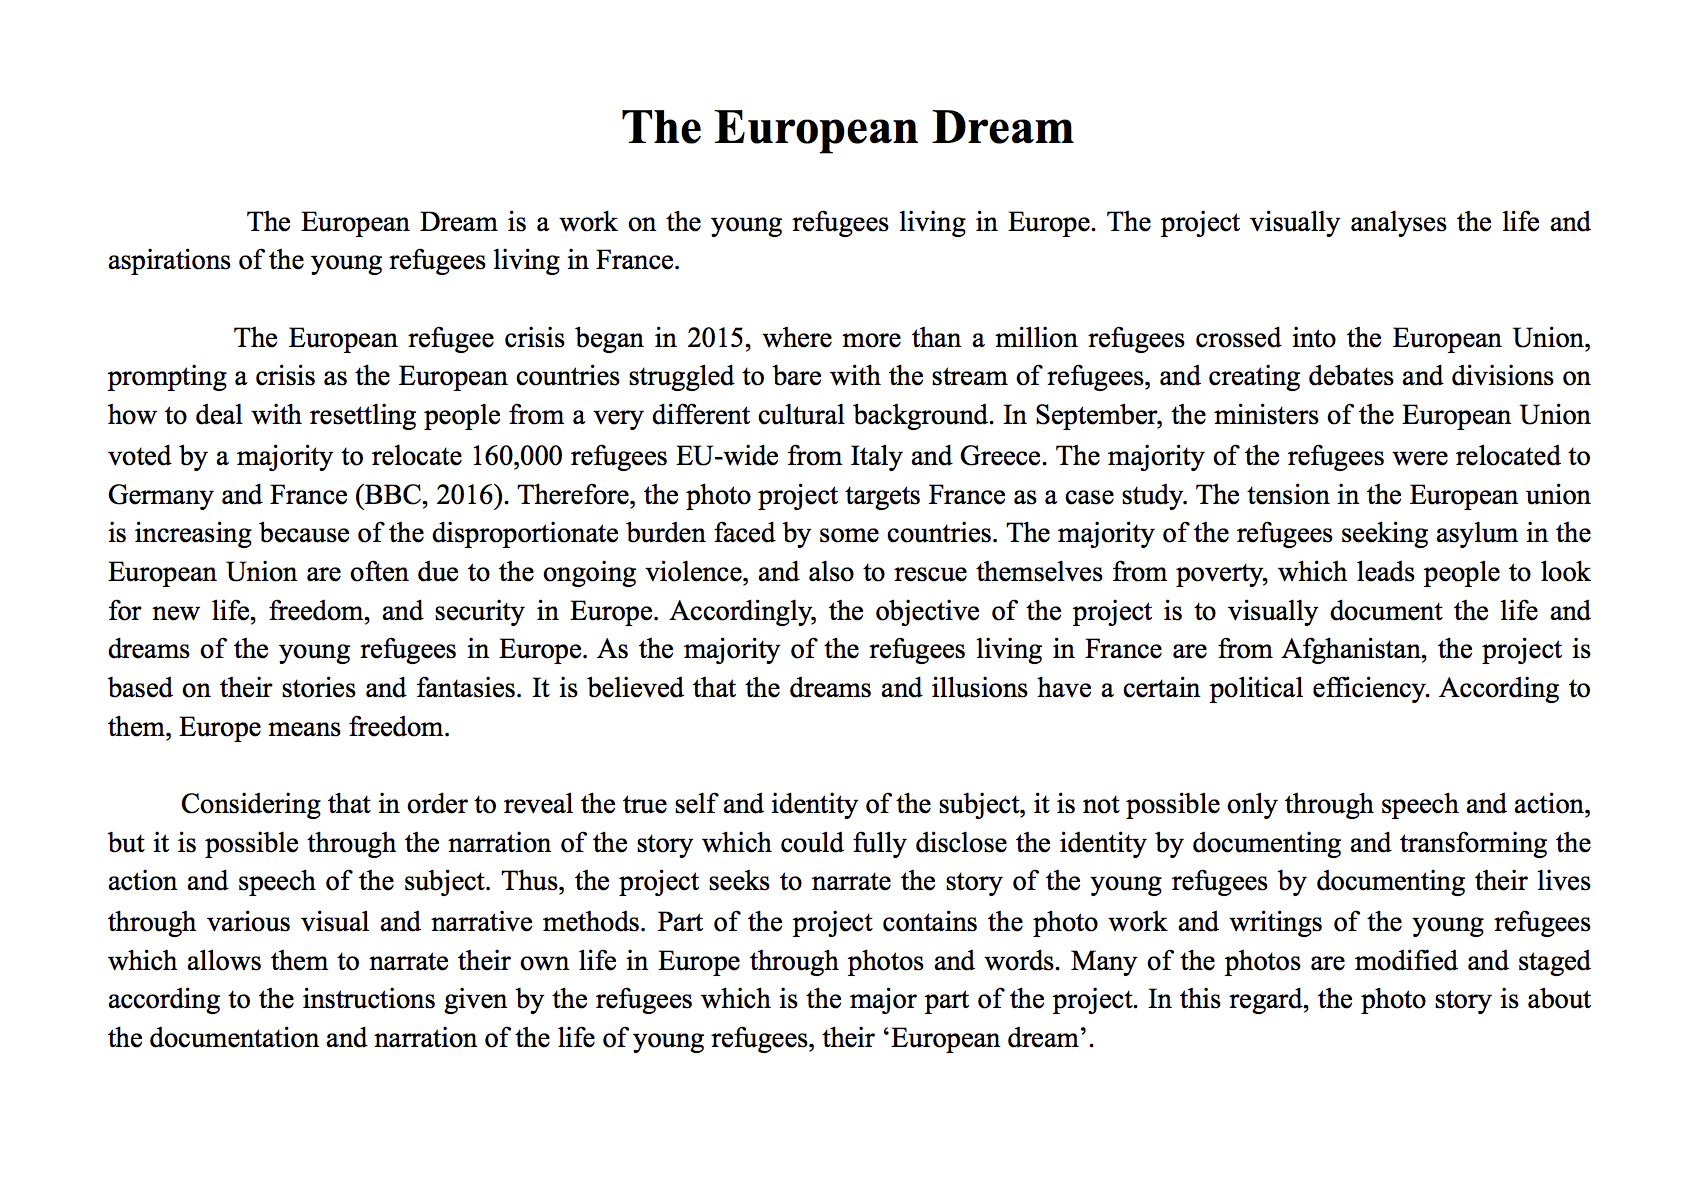 The European Dream: Introduction